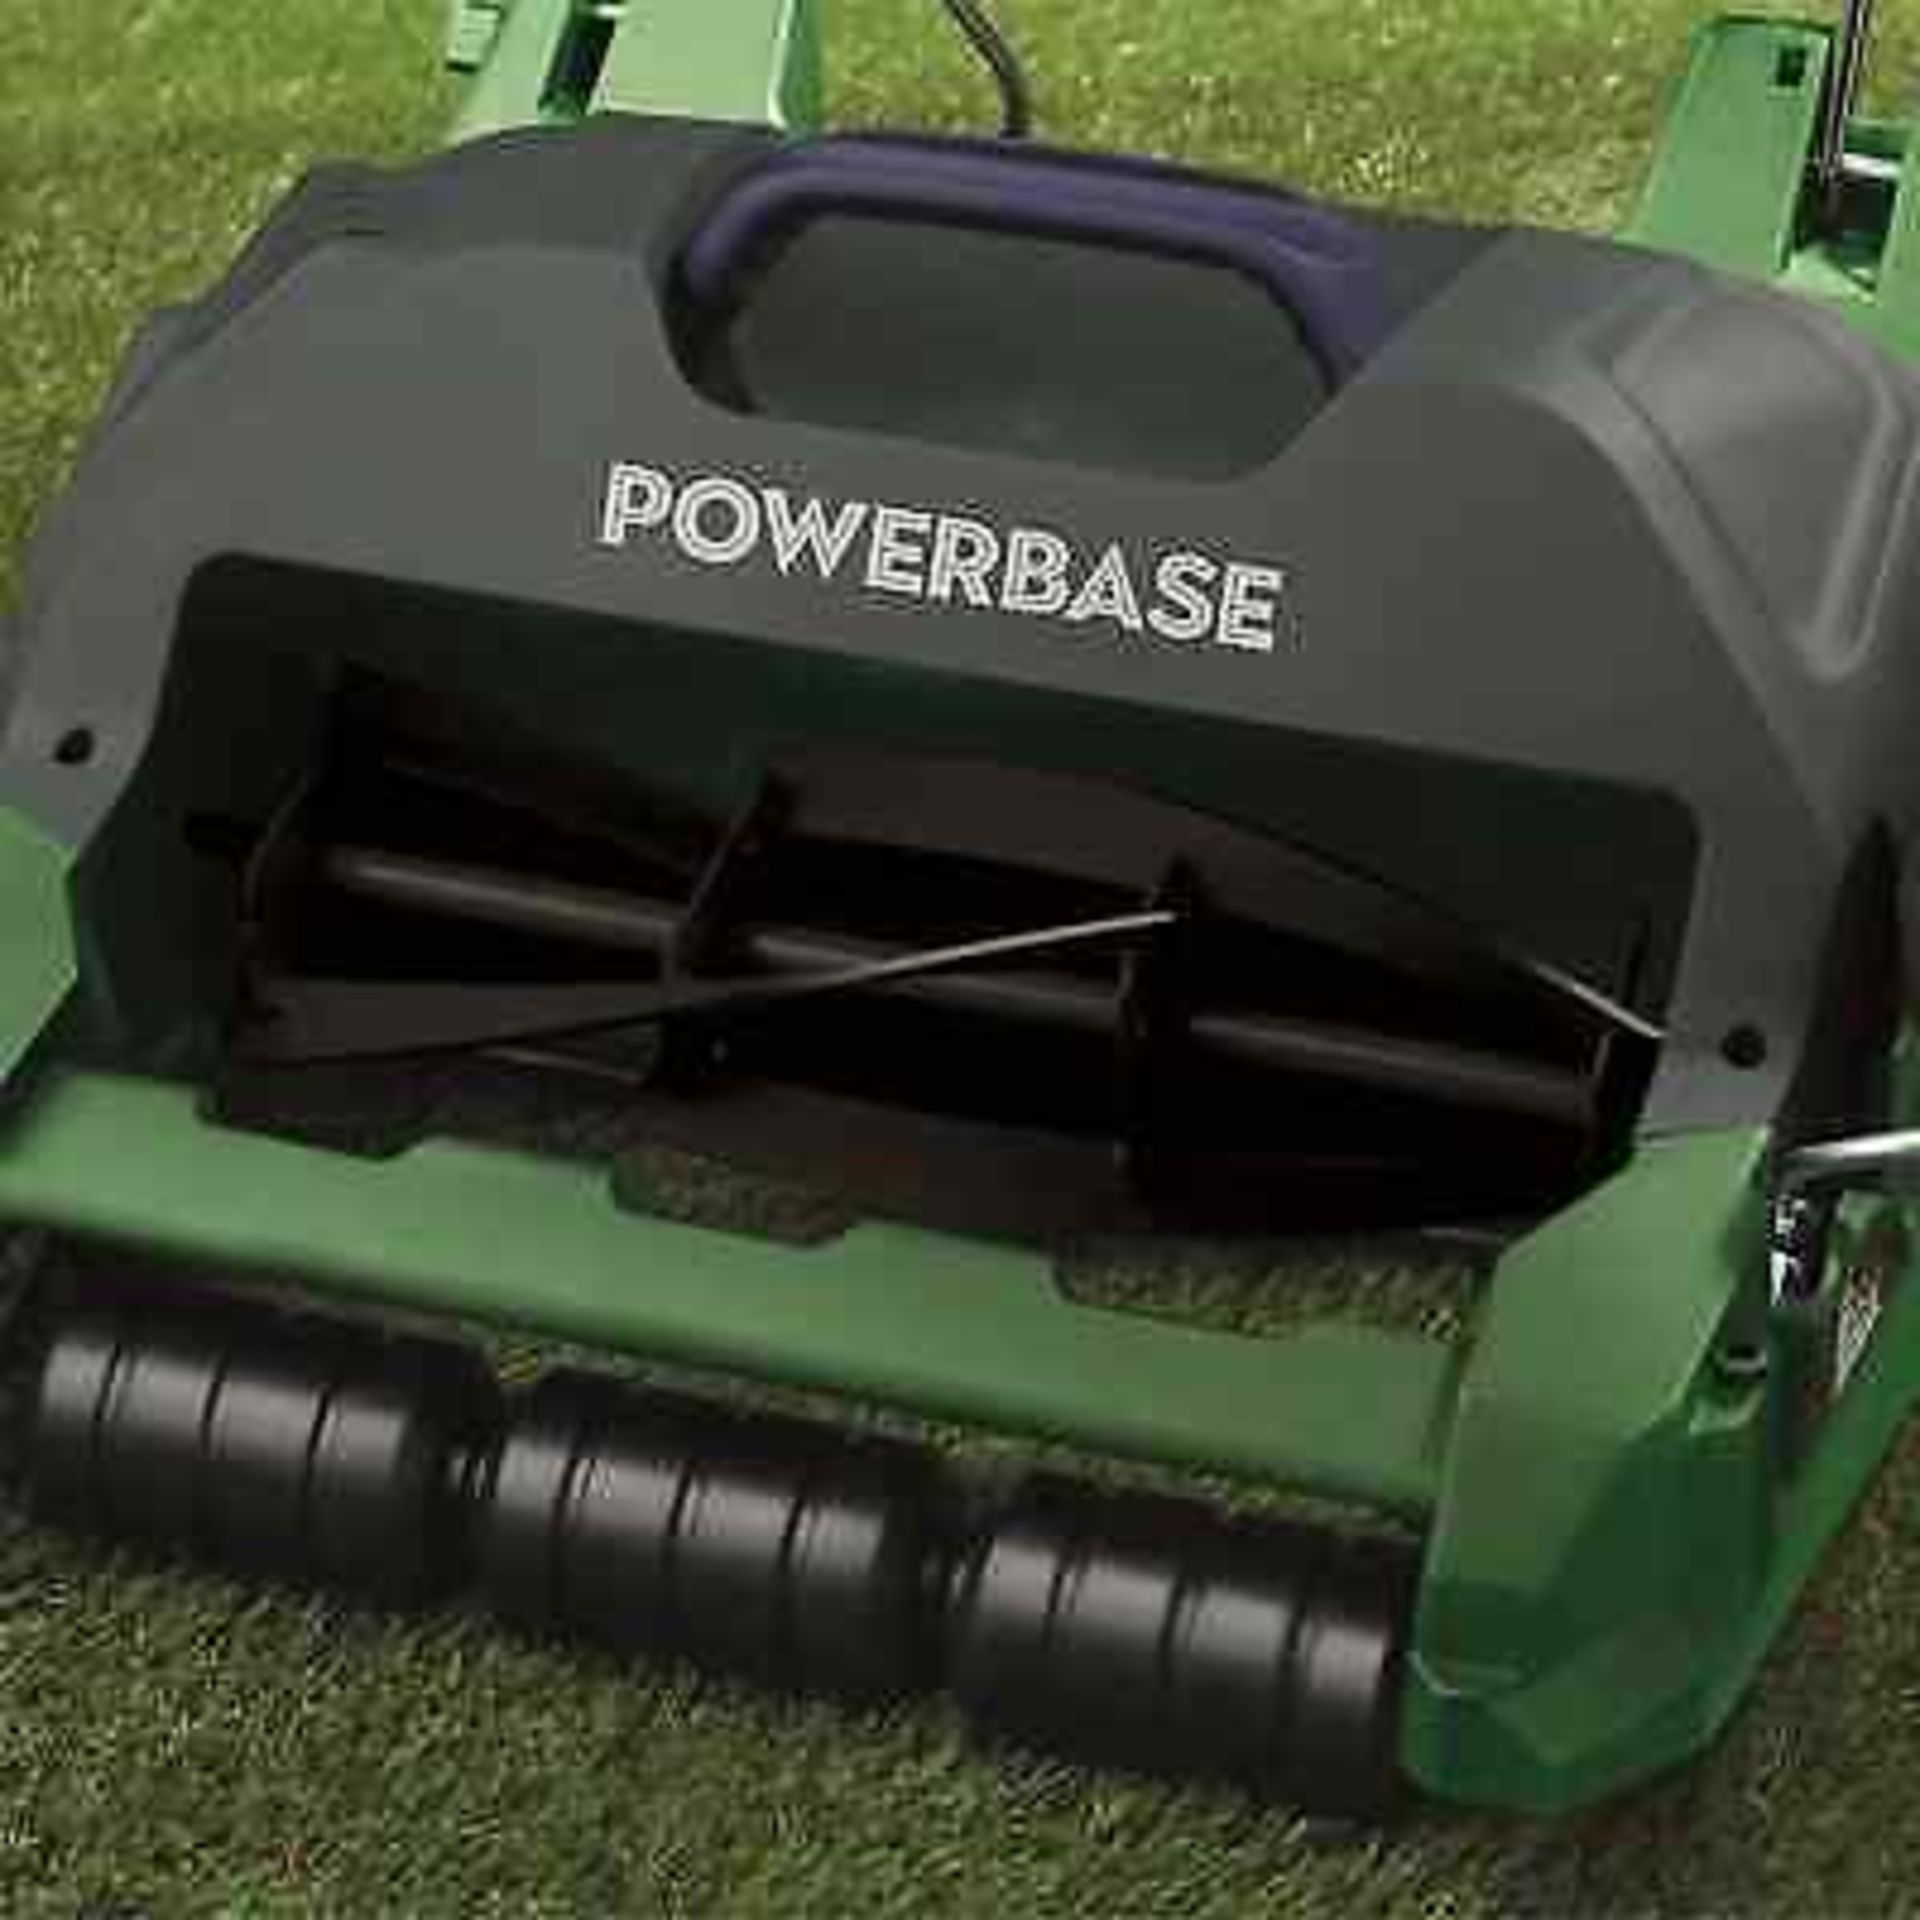 (P6) 1x Powerbase 32cm 400W Electric Cylinder Lawn Mower RRP £89. New, Sealed Item. (Undelivered R - Image 2 of 3